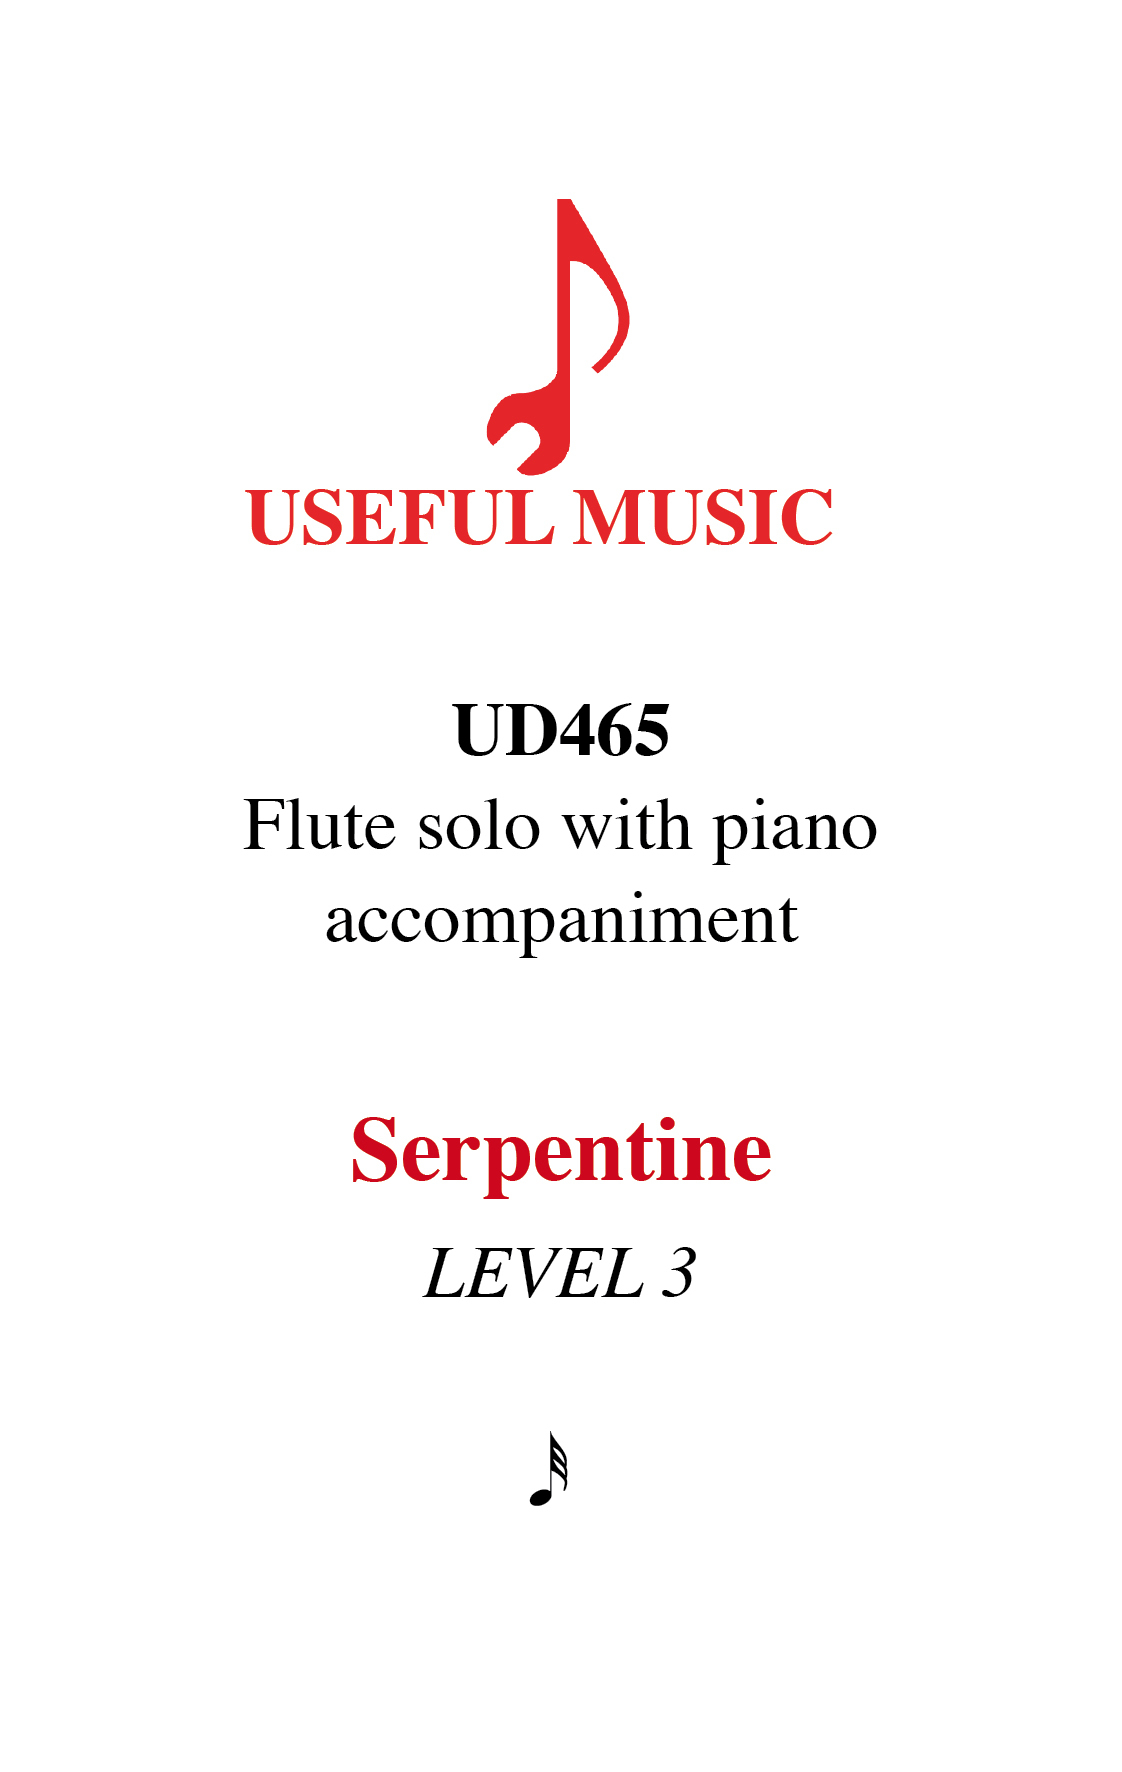 Serpentine - flute with piano accompaniment